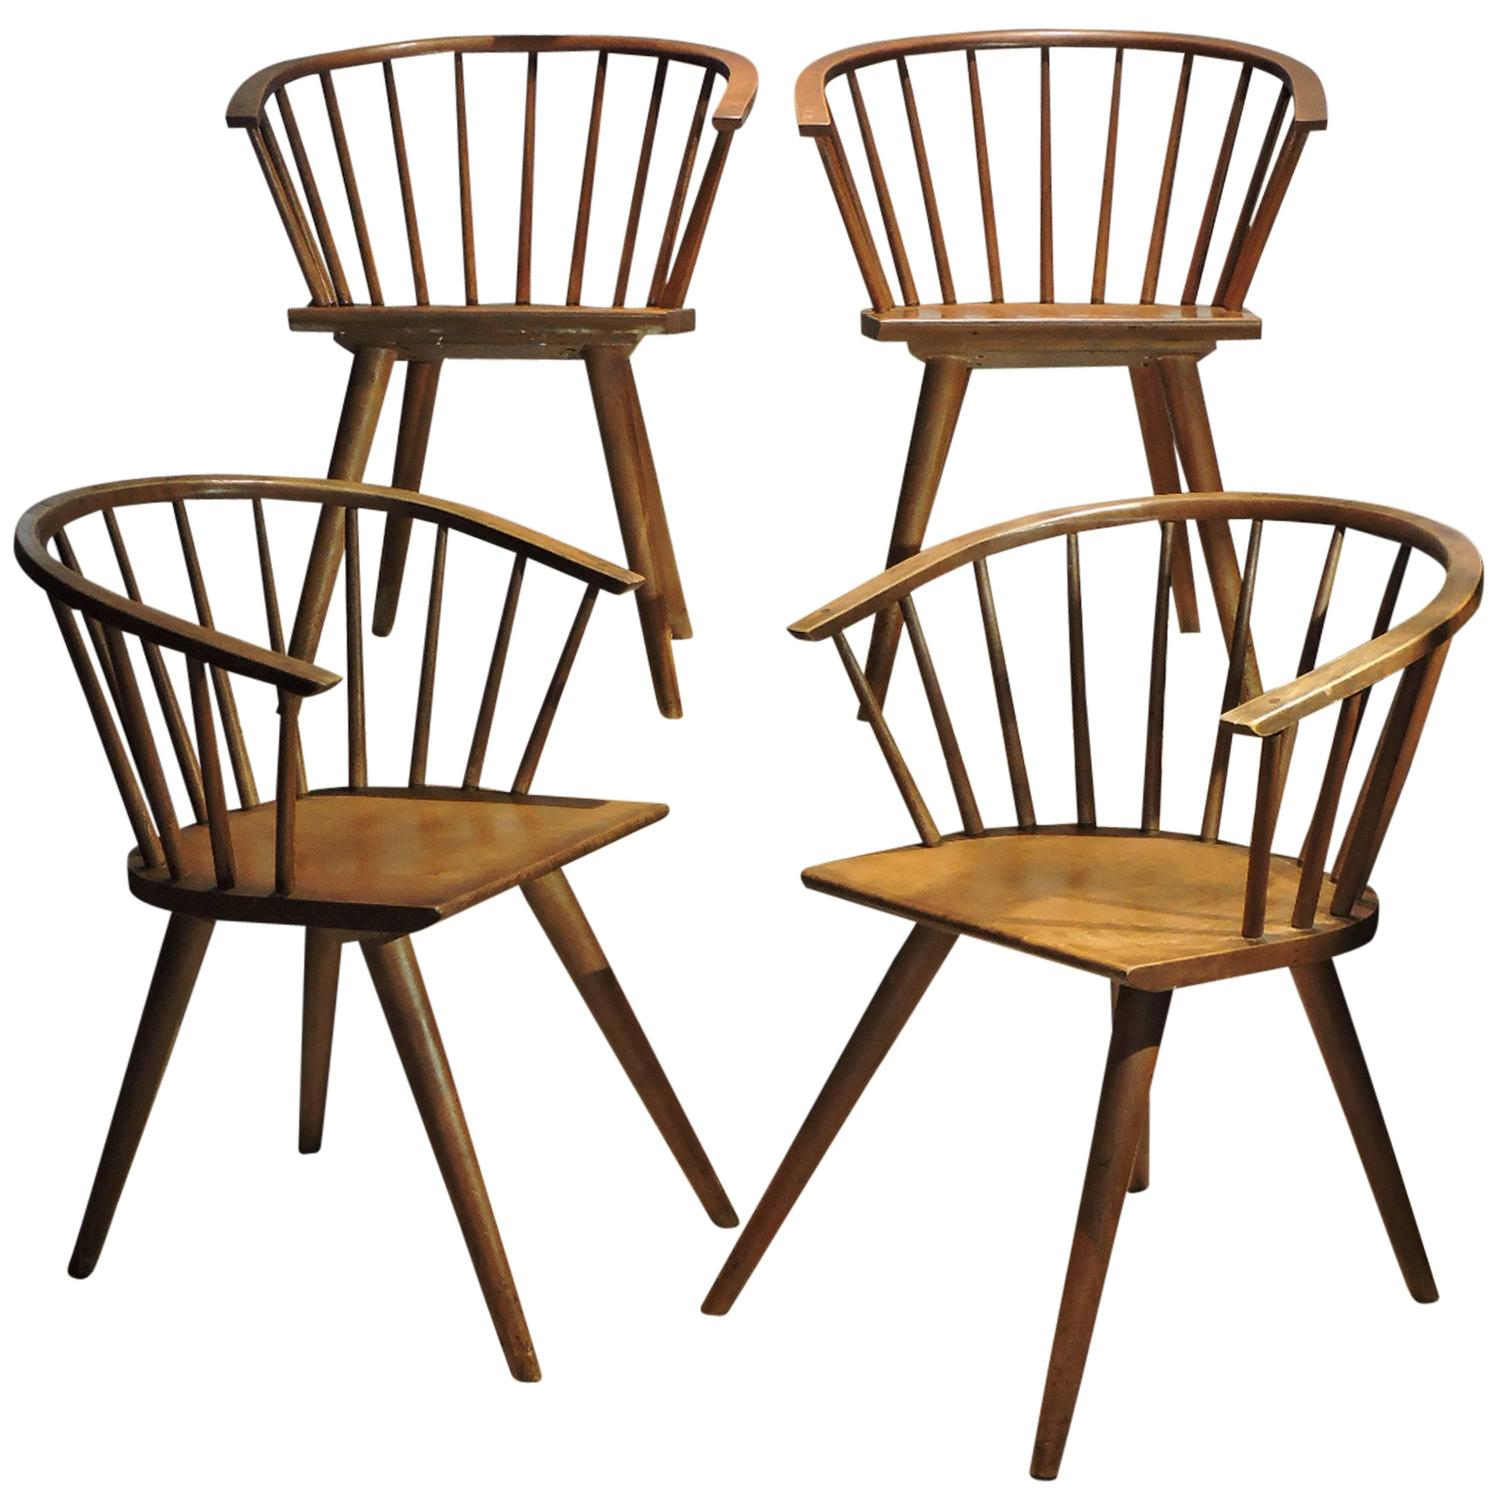 Modernist Windsor Chairs by Russel Wright for Conant Ball at 1stdibs